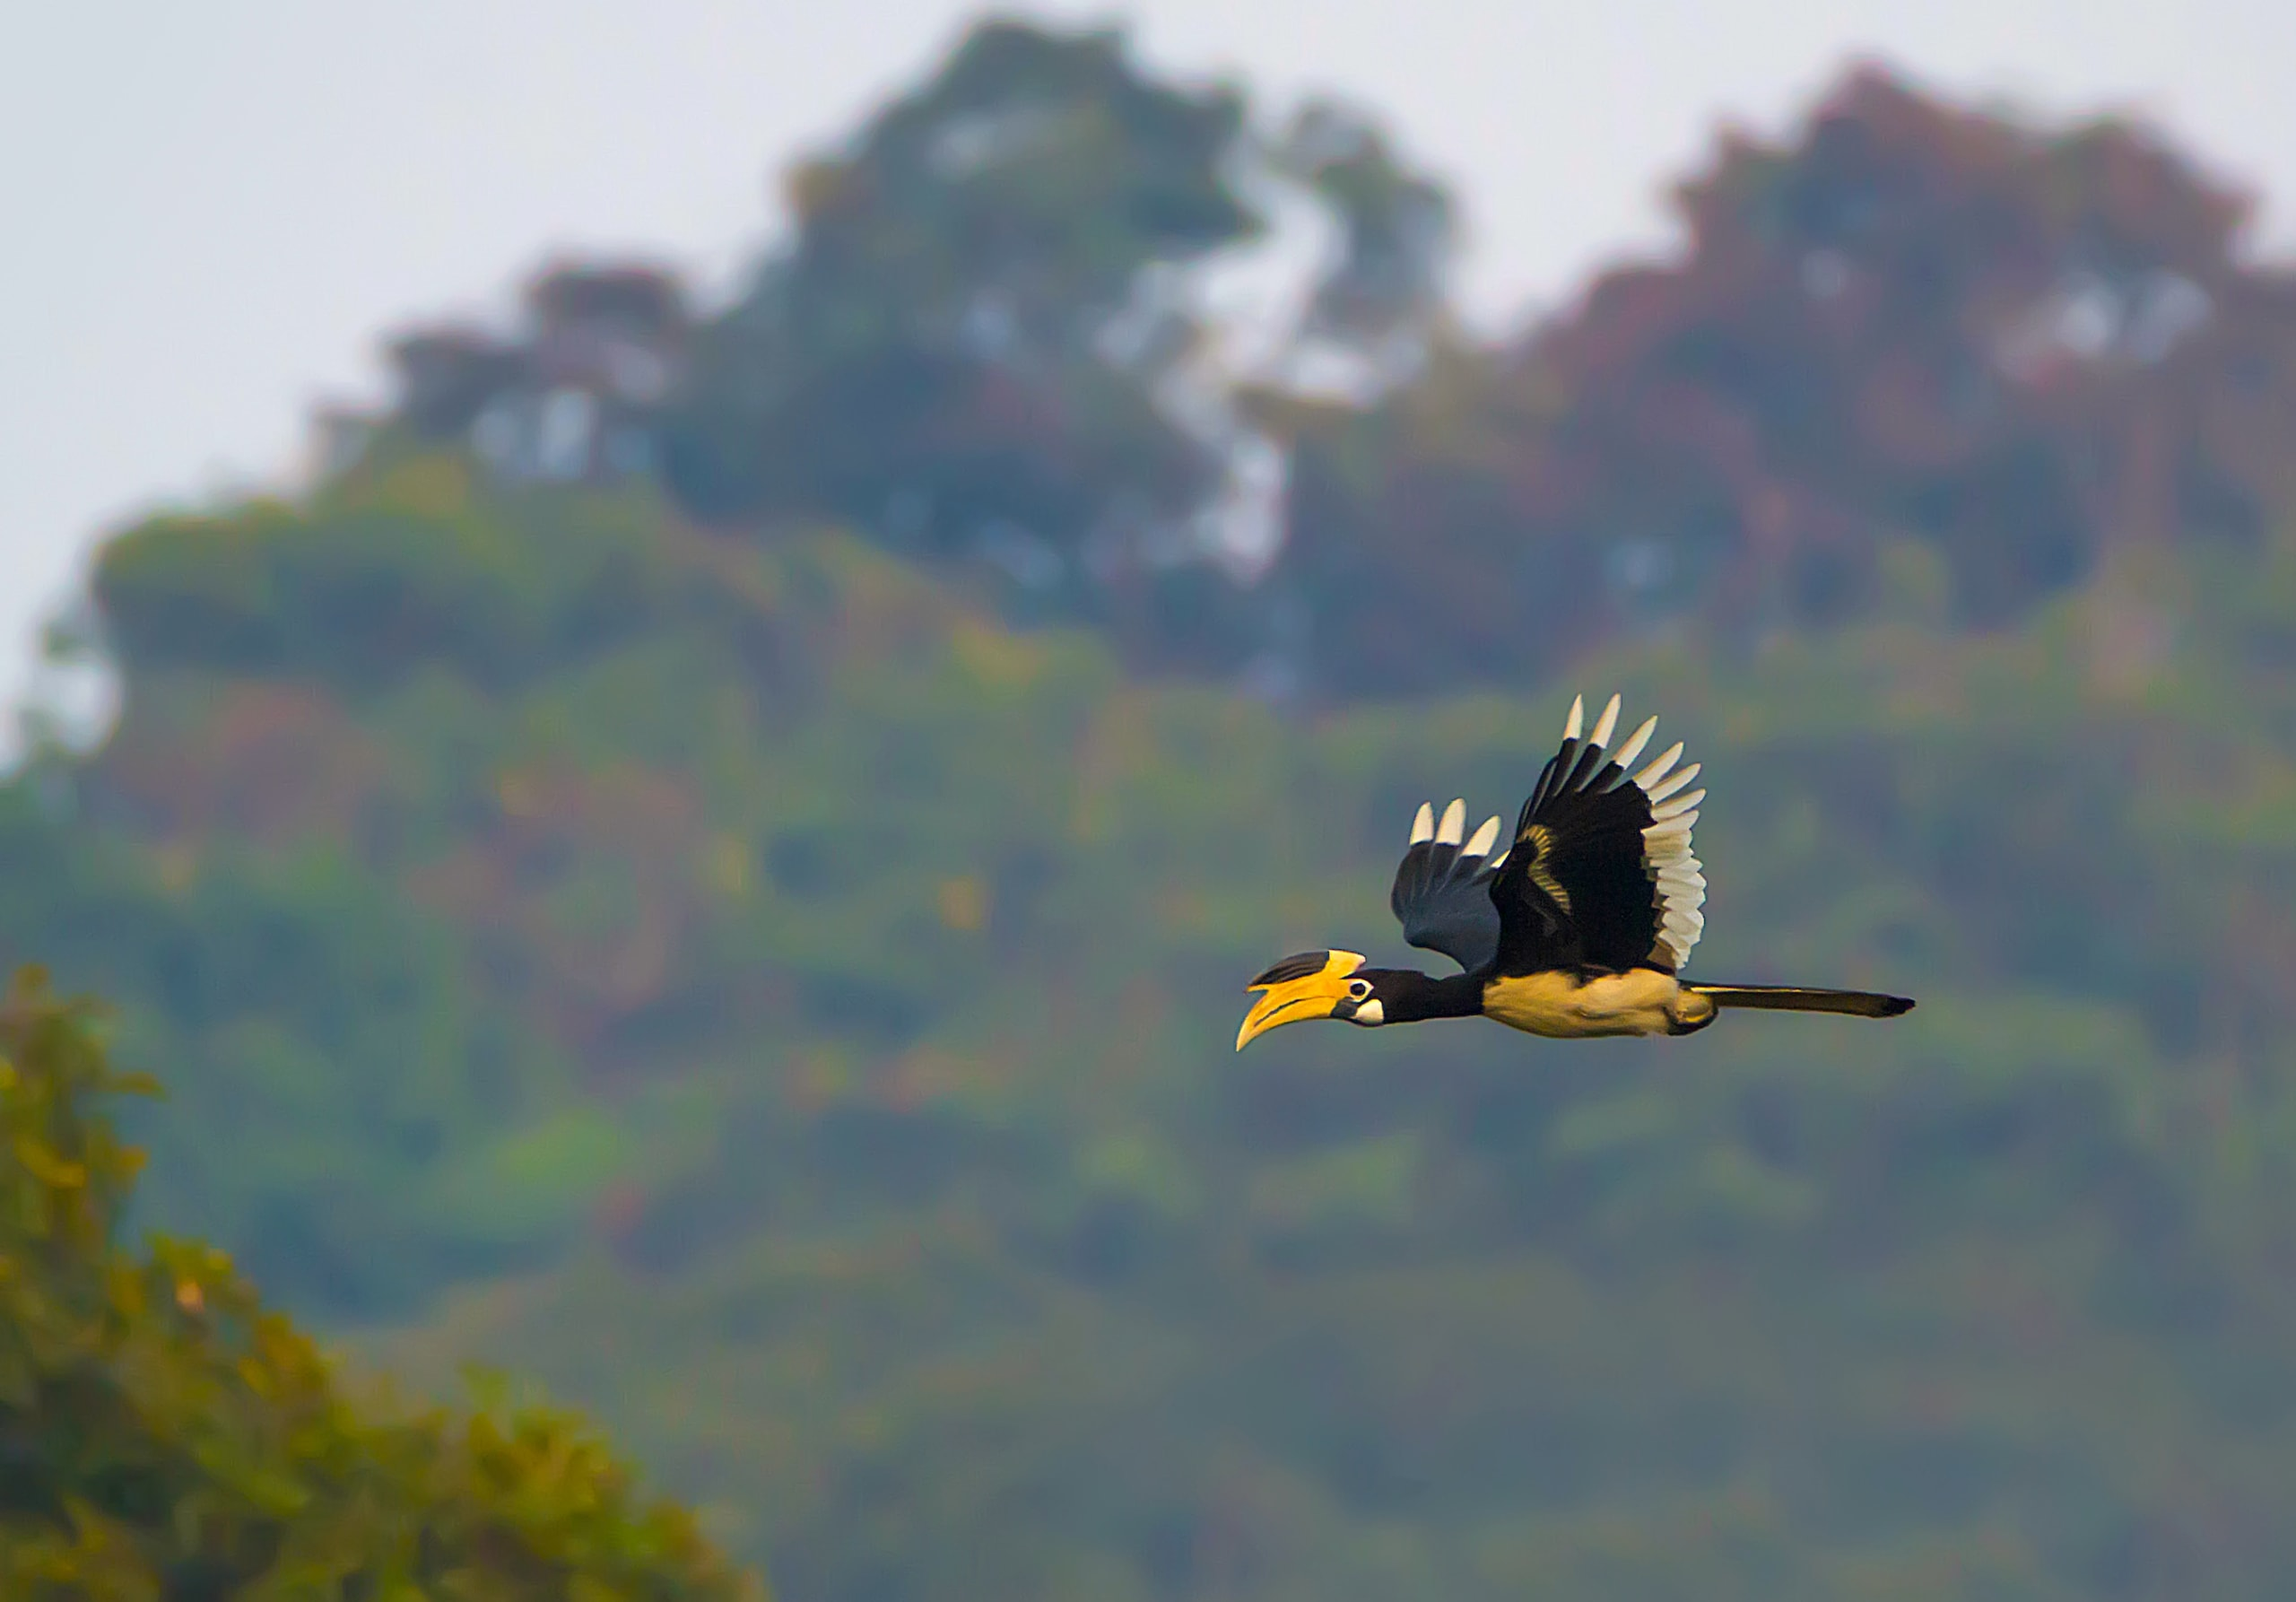 When in flight, the white tips on its black wings give the hornbill a glorious halo. Photo: Saswat Mishra / CC BY-SA 4.0